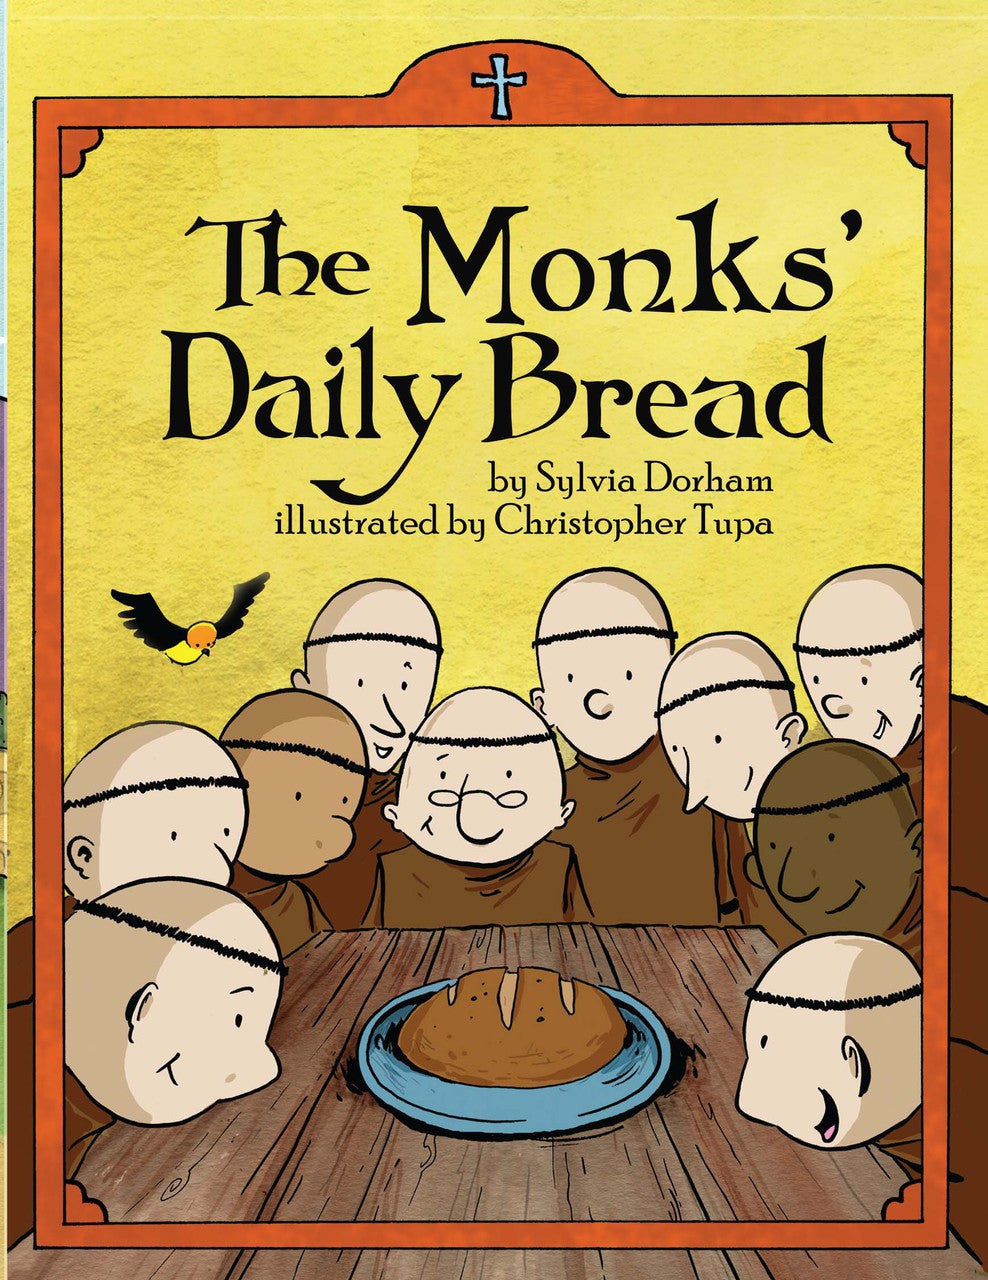 The Monks Daily Bread - ABCatholic